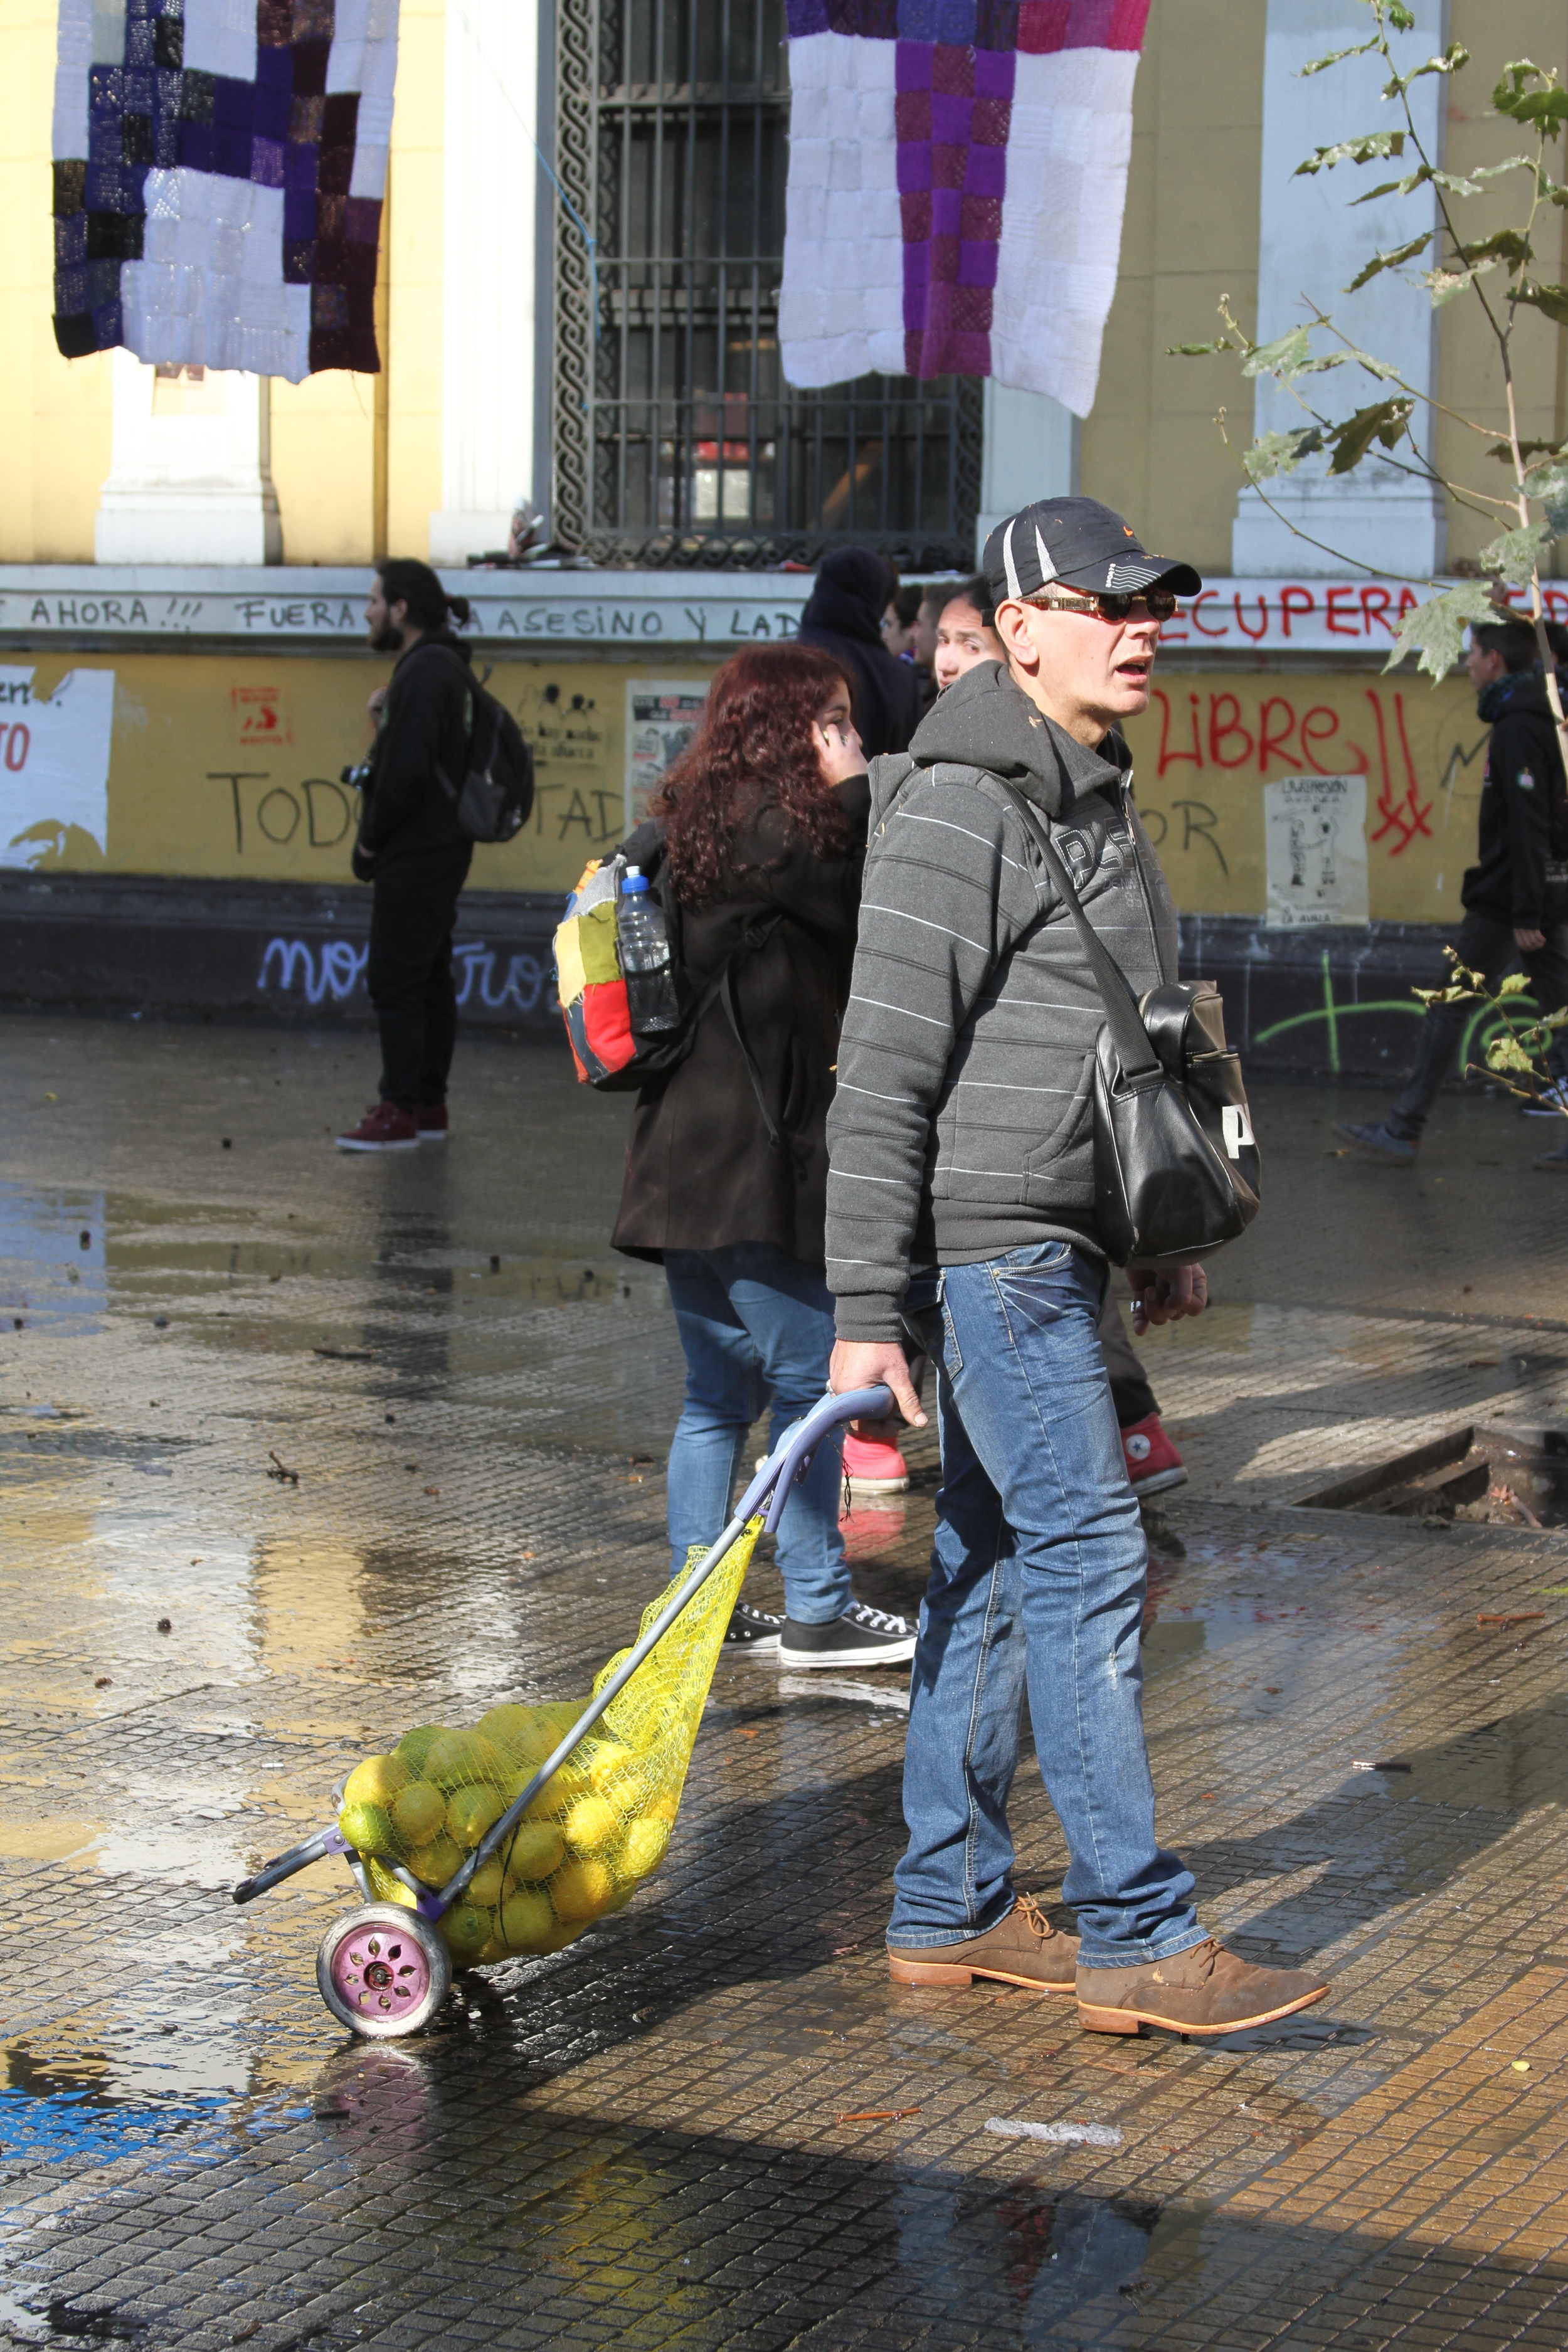 Man Selling Lemons to Counteract the Gas